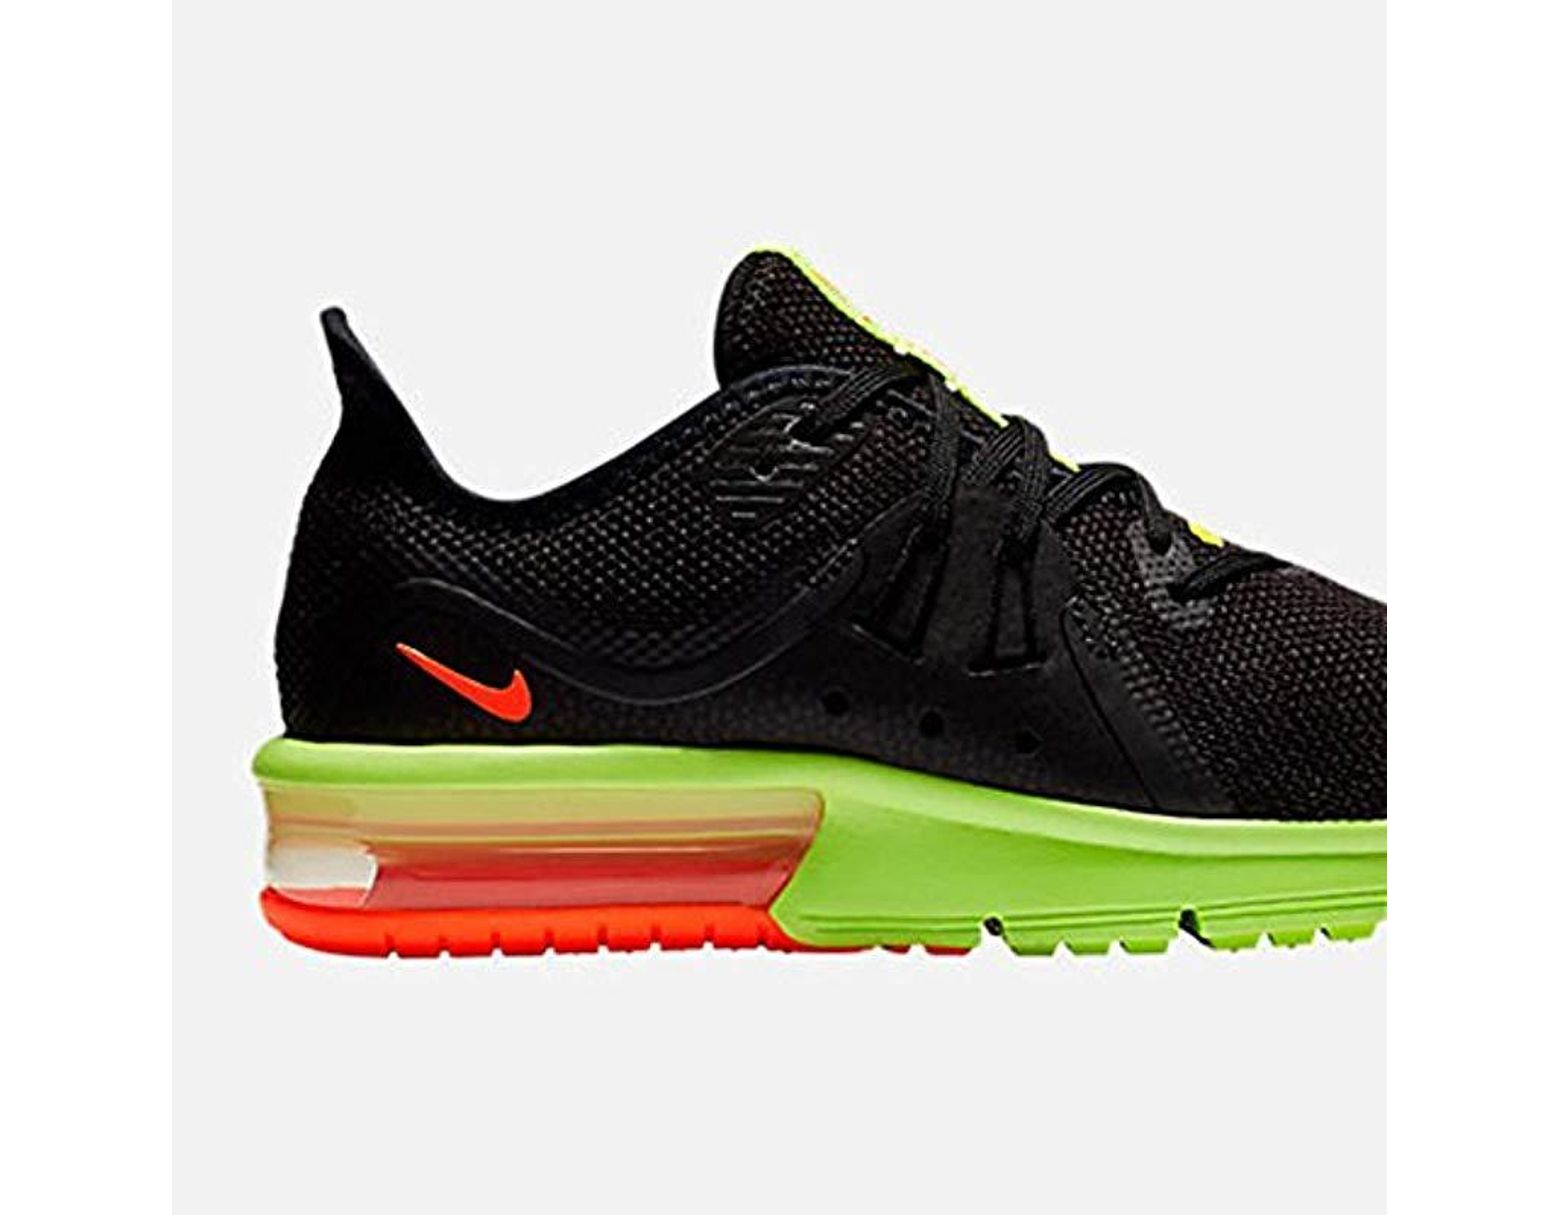 865c7a4721fd6 Men's Black Air Max Sequent 3 (gs) Running Shoes